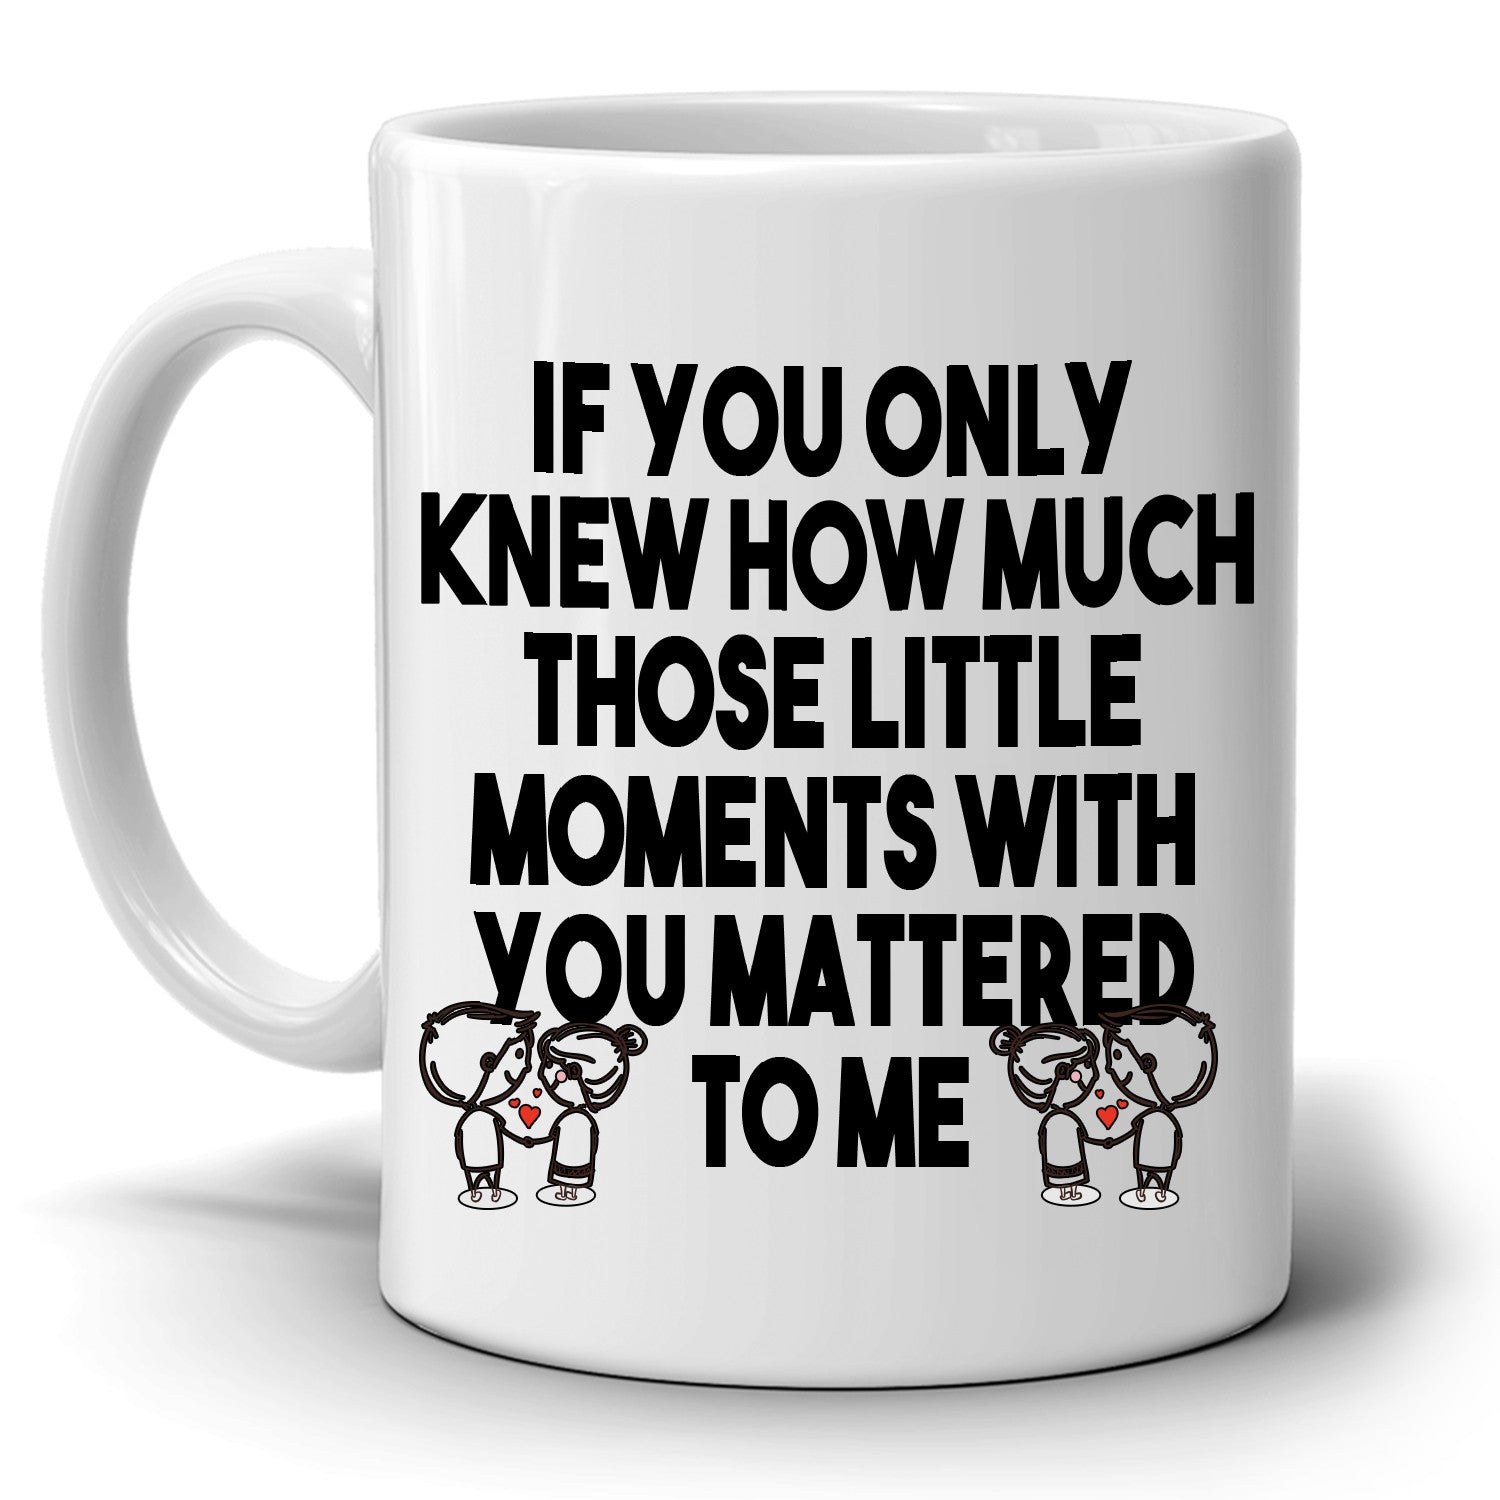 Inspirational Romantic Gifts For Husband And Wife Birthday Anniversary Couple Coffee Mug Printed On